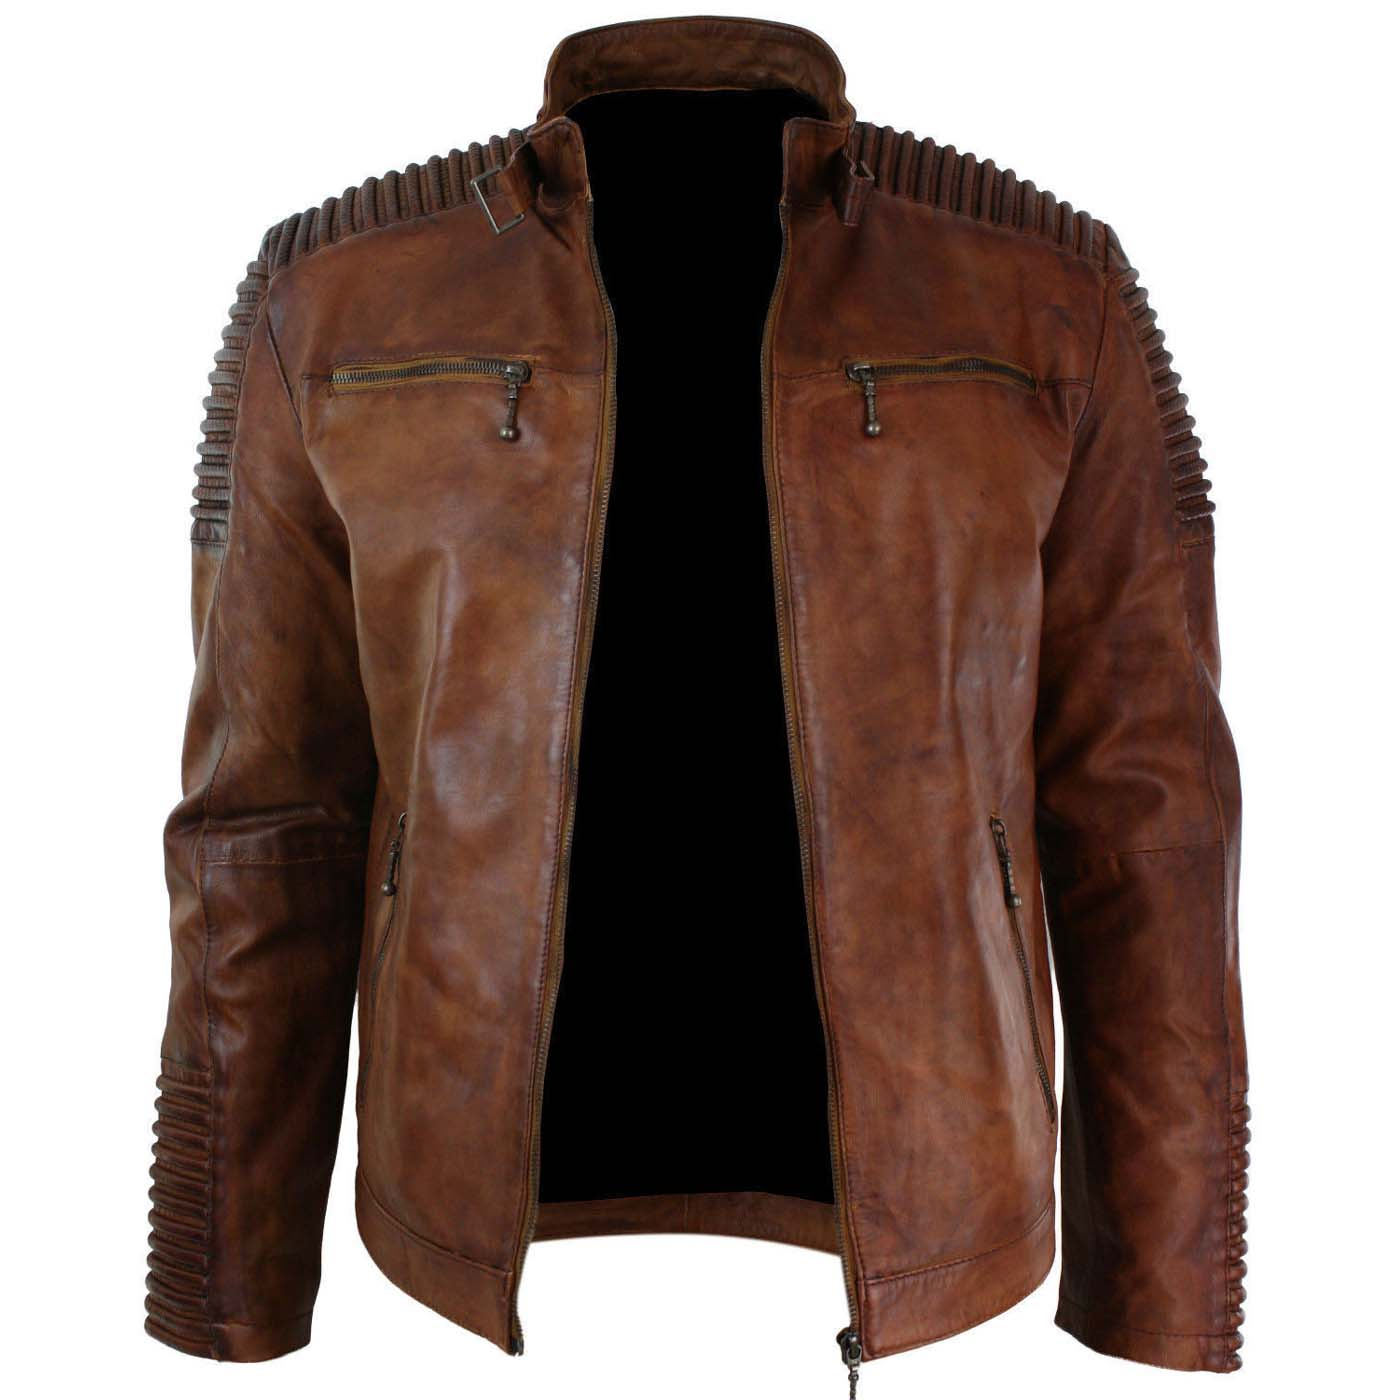 Mens-Biker-Vintage-Cafe-Racer-Wax-Distressed-Brown-Leather-Jacket